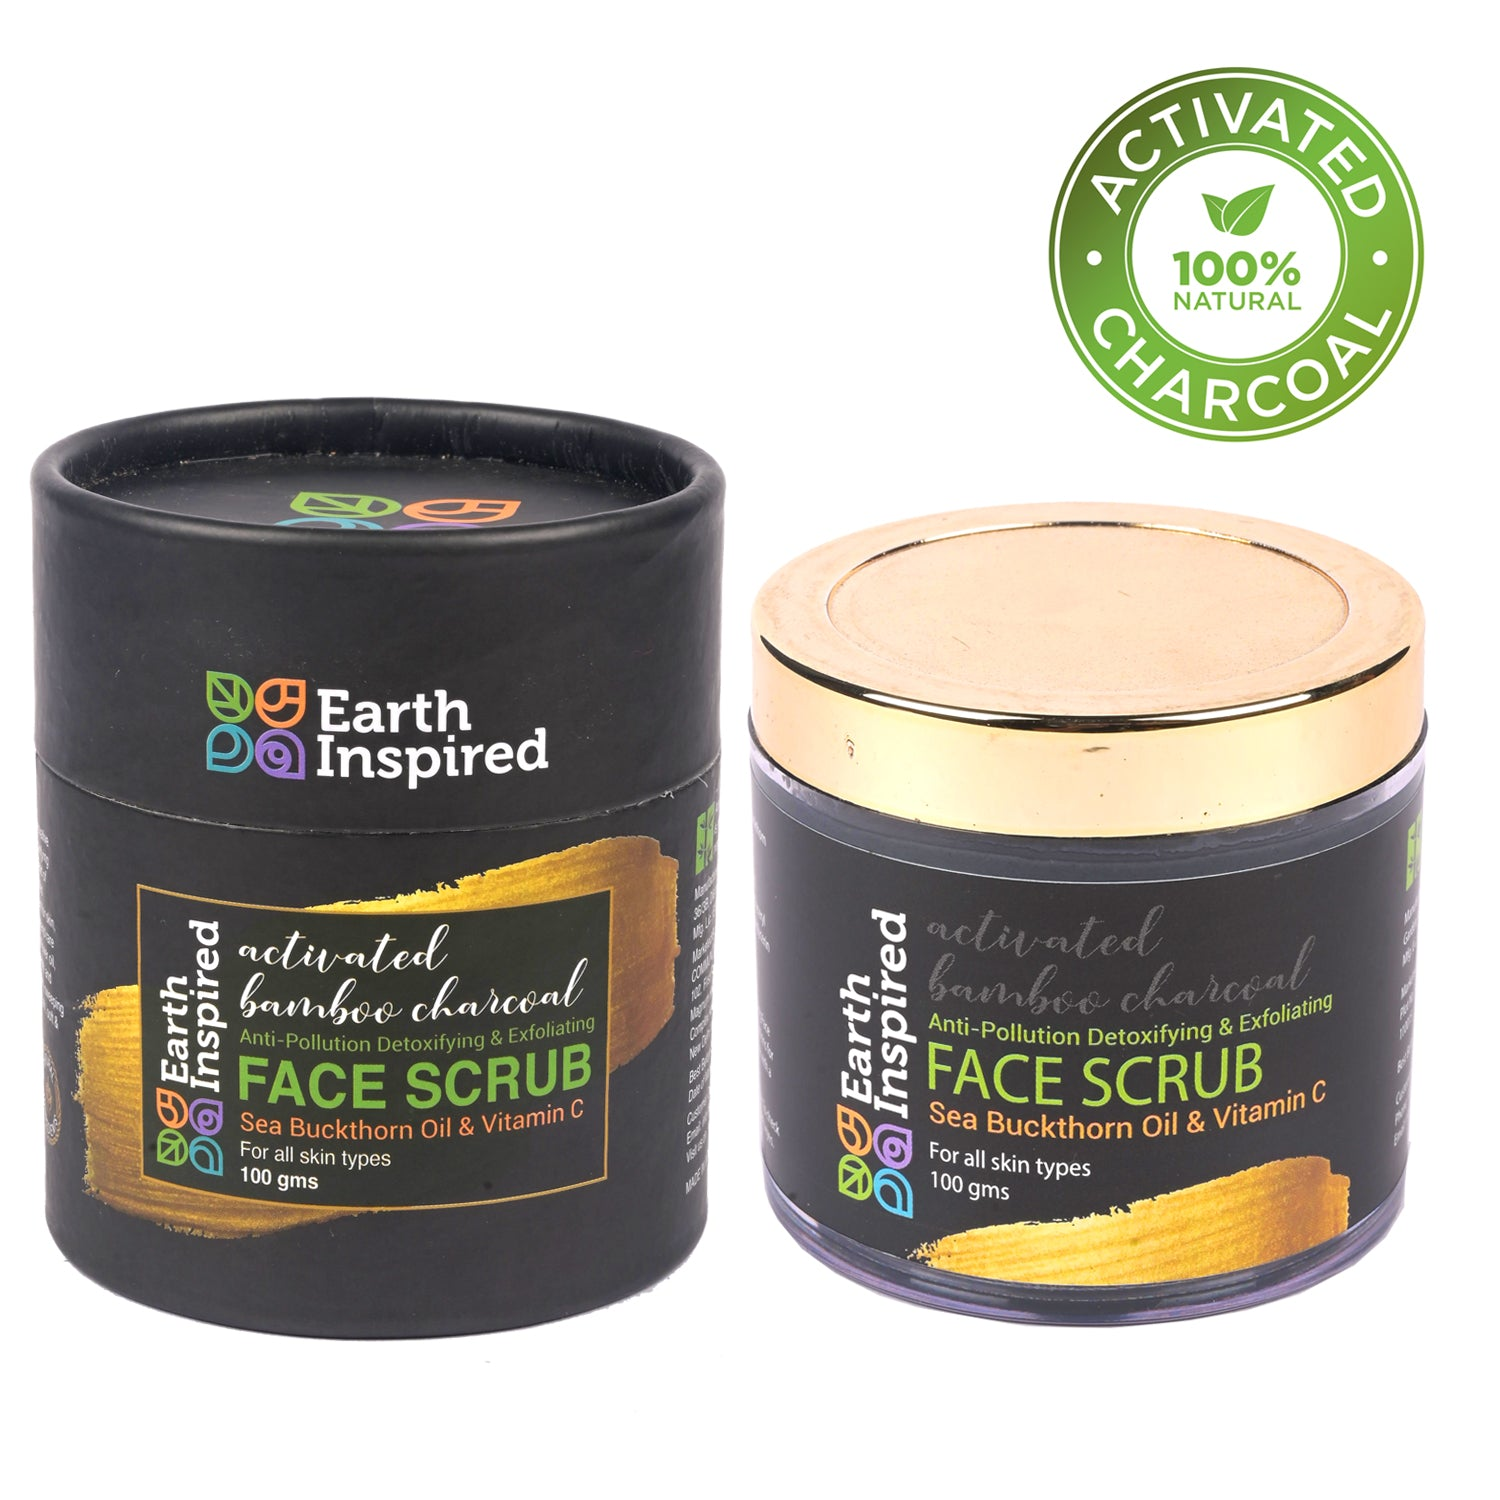 Activated Bamboo Charcoal Face Scrub by Earth Inspired